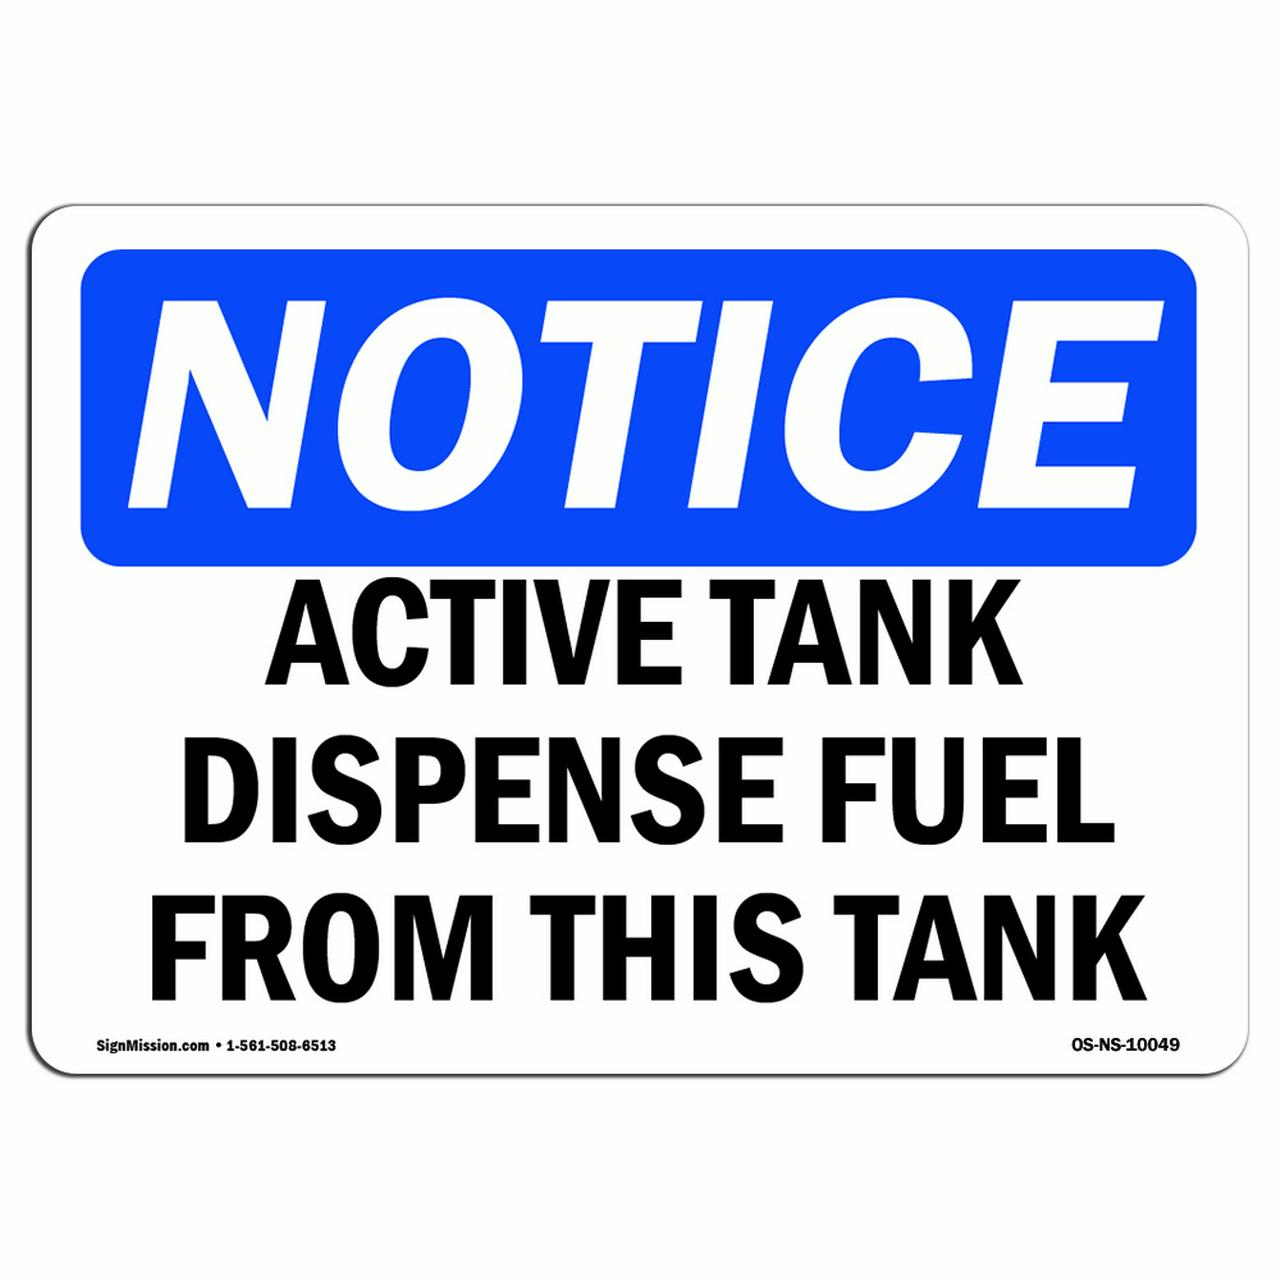 OSHA Notice Sign - Active Tank Dispense Fuel From Tank | Choose from: Aluminum, Rigid Plastic or Vinyl Label Decal | Protect Your Business, Construction Site, Warehouse & Shop Area |  Made in the USA